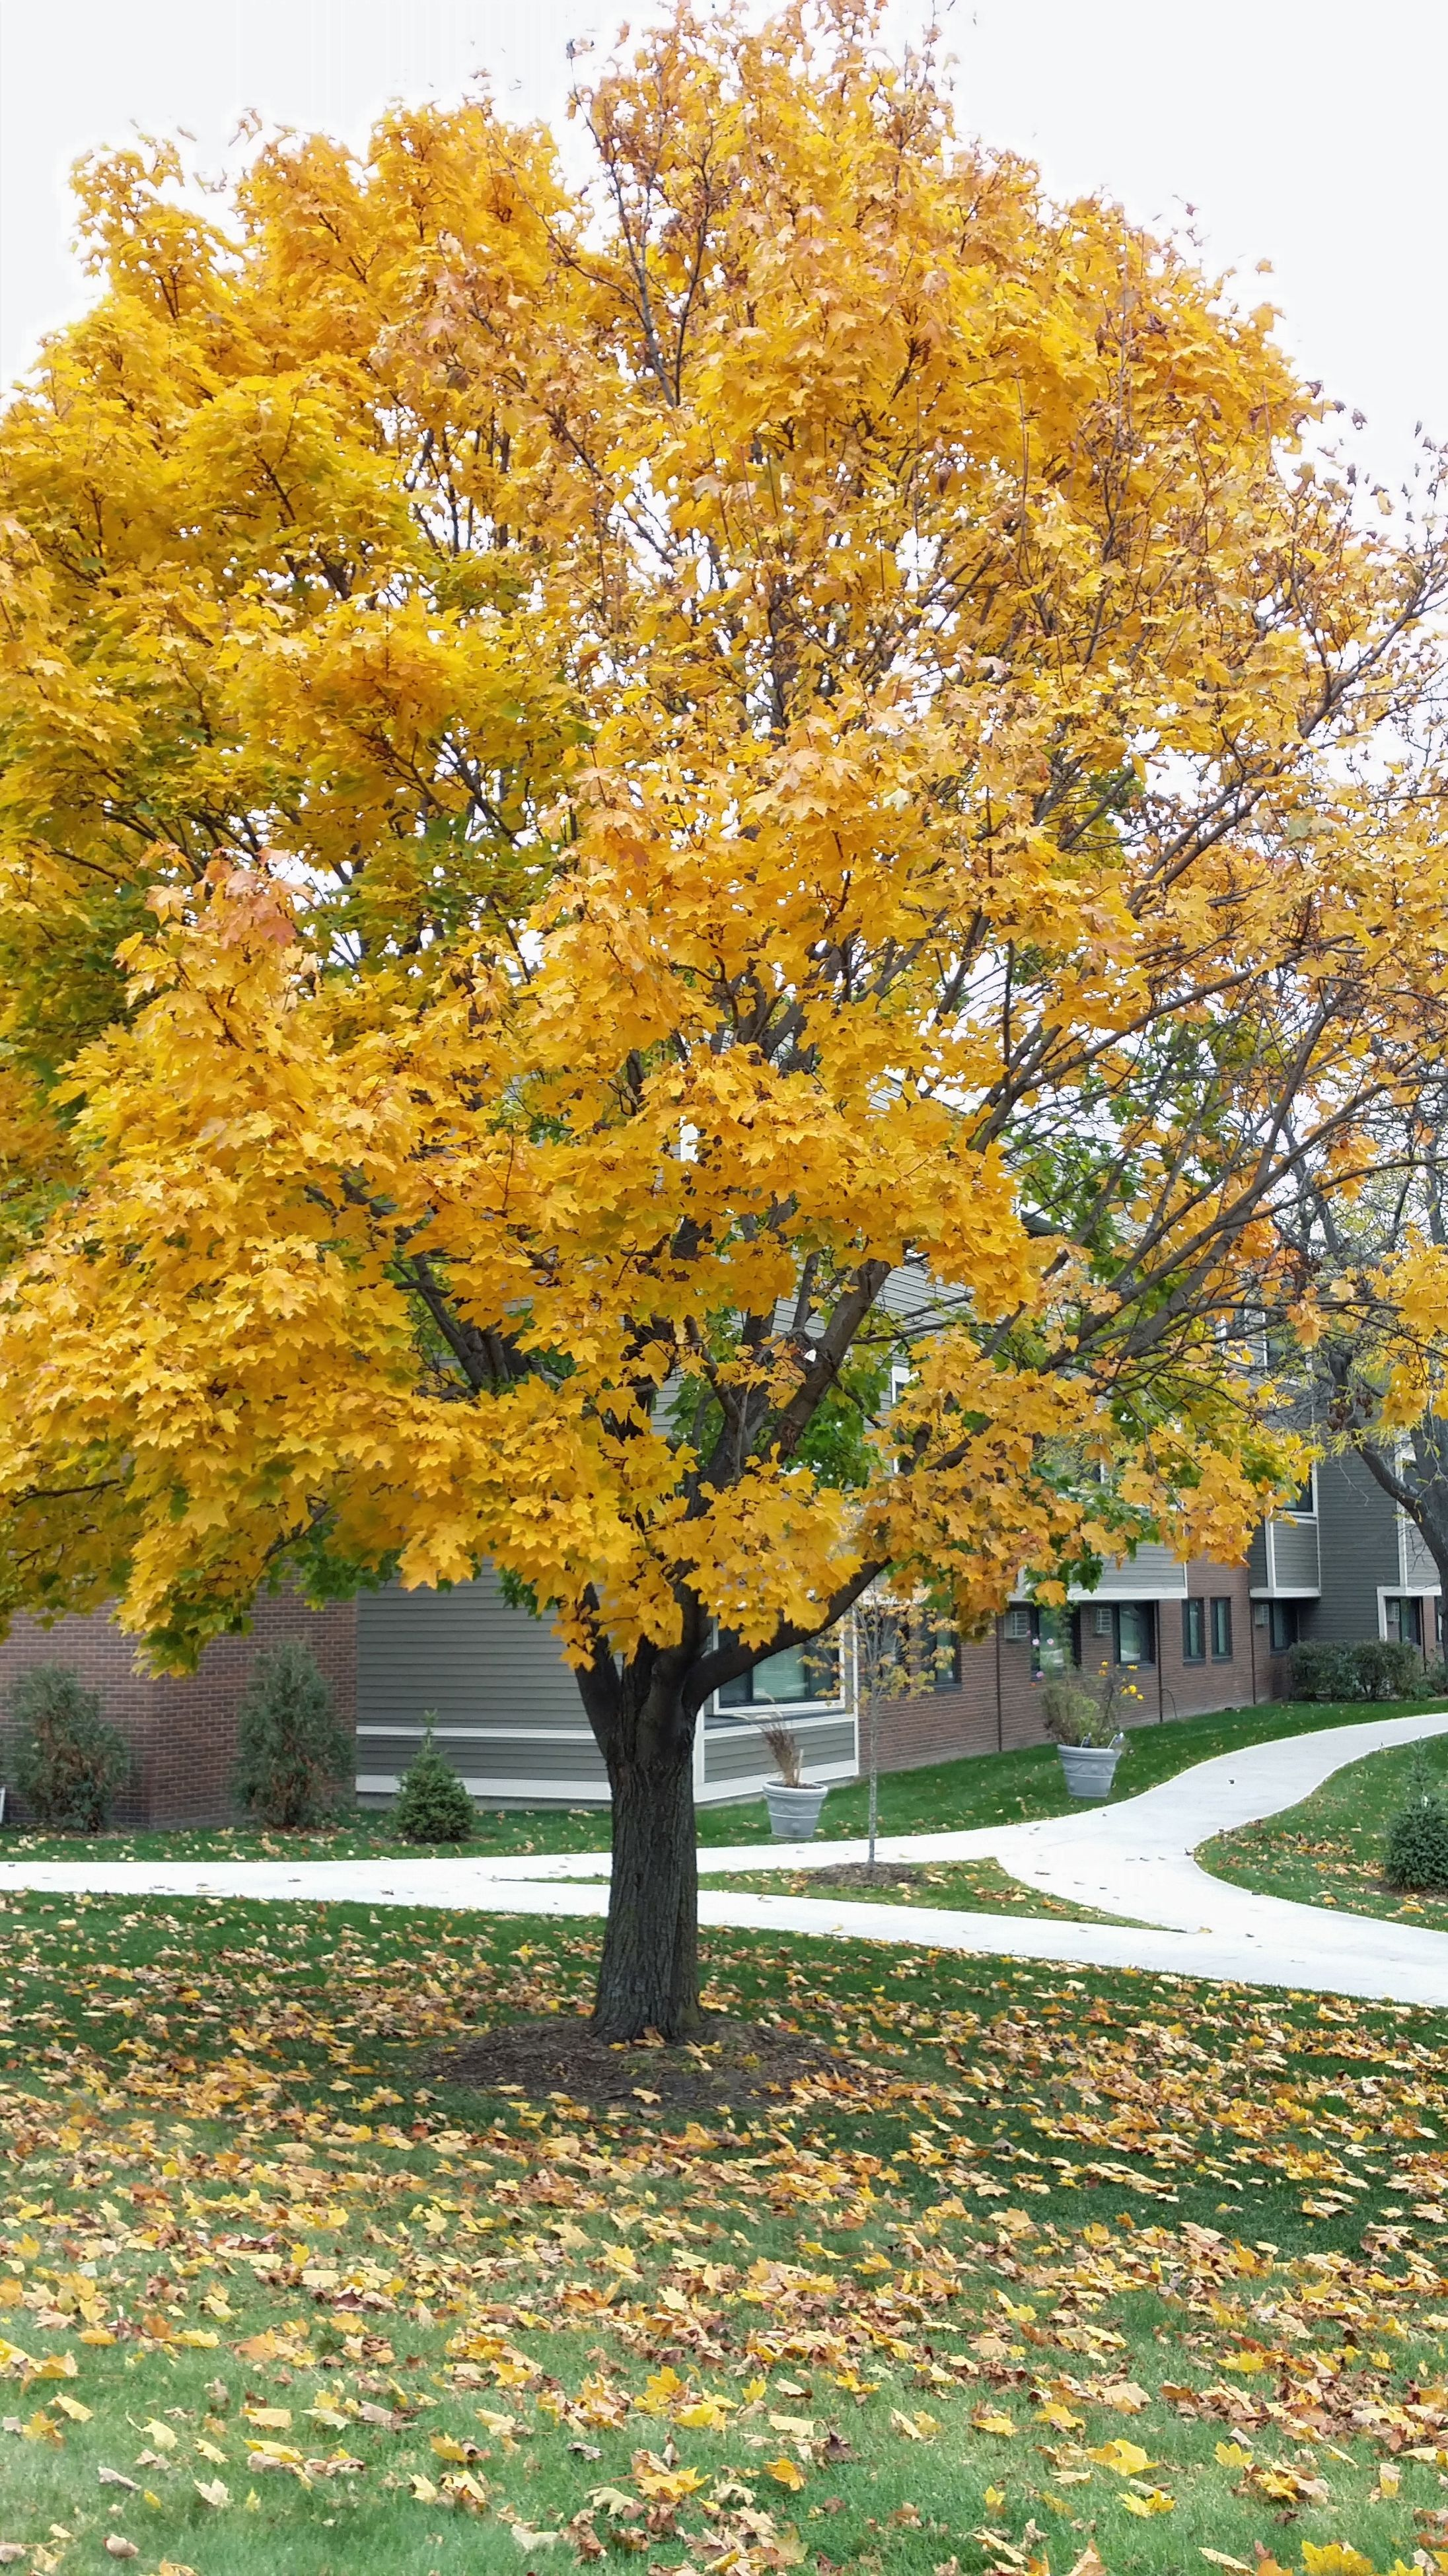 autumn, yellow, change, season, tree, building exterior, built structure, growth, leaf, architecture, field, nature, clear sky, beauty in nature, flower, day, grass, house, park - man made space, sunlight